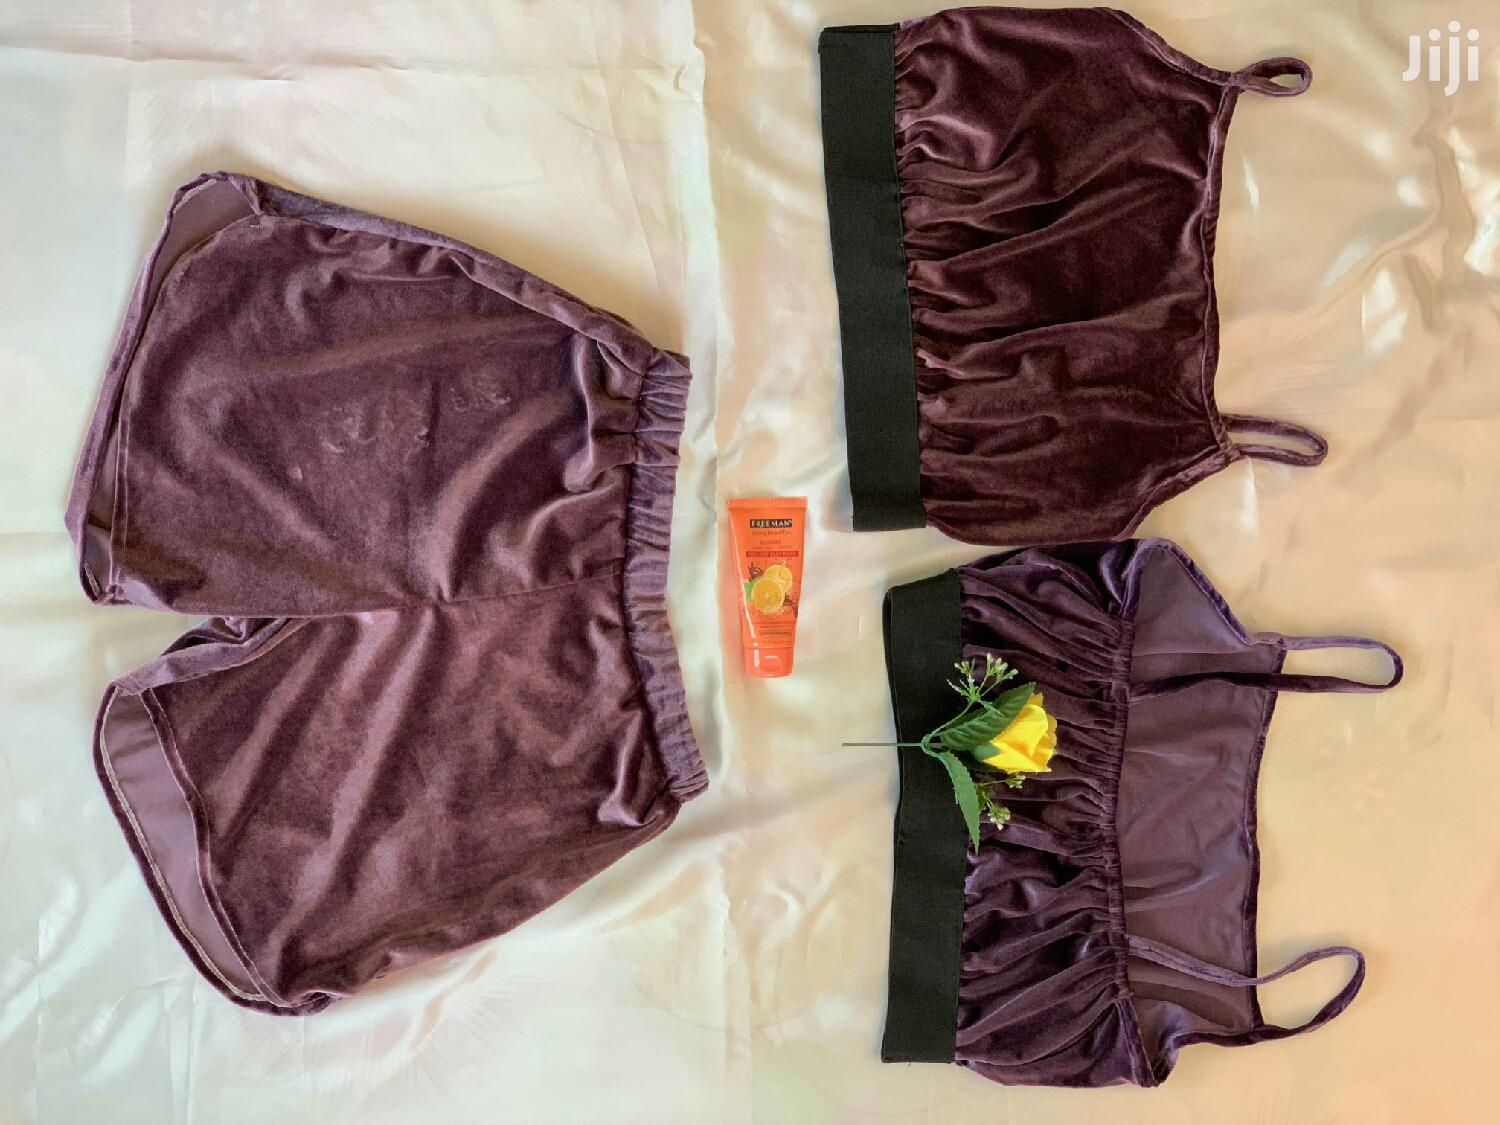 Handmade Velvet Crop Top And Shorts   Clothing for sale in Accra Metropolitan, Greater Accra, Ghana